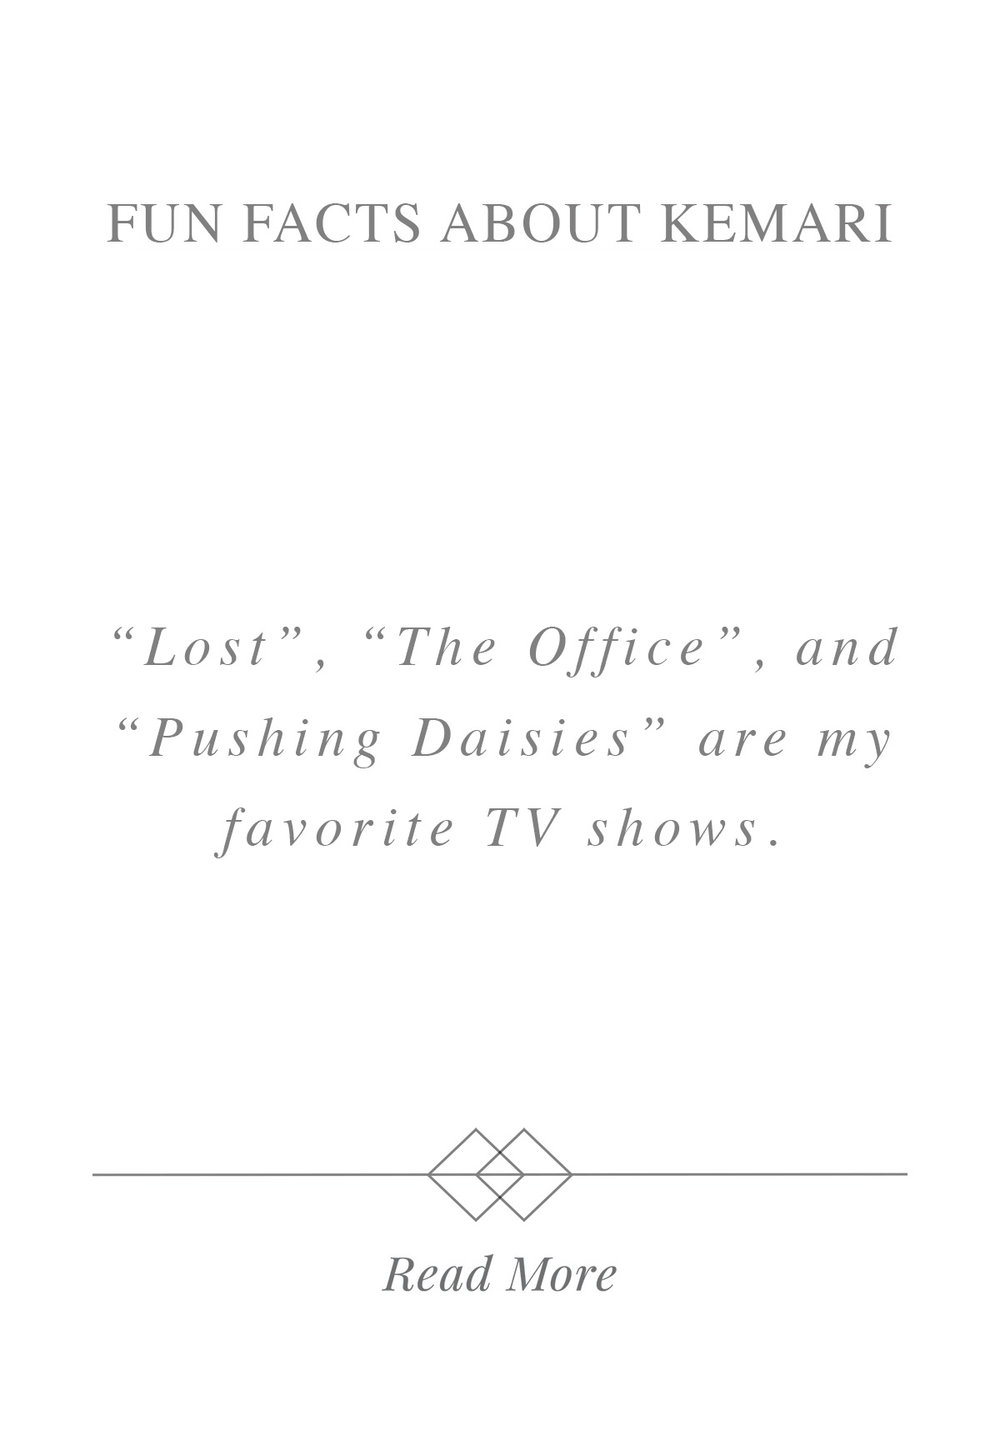 fun facts kemari3.jpg